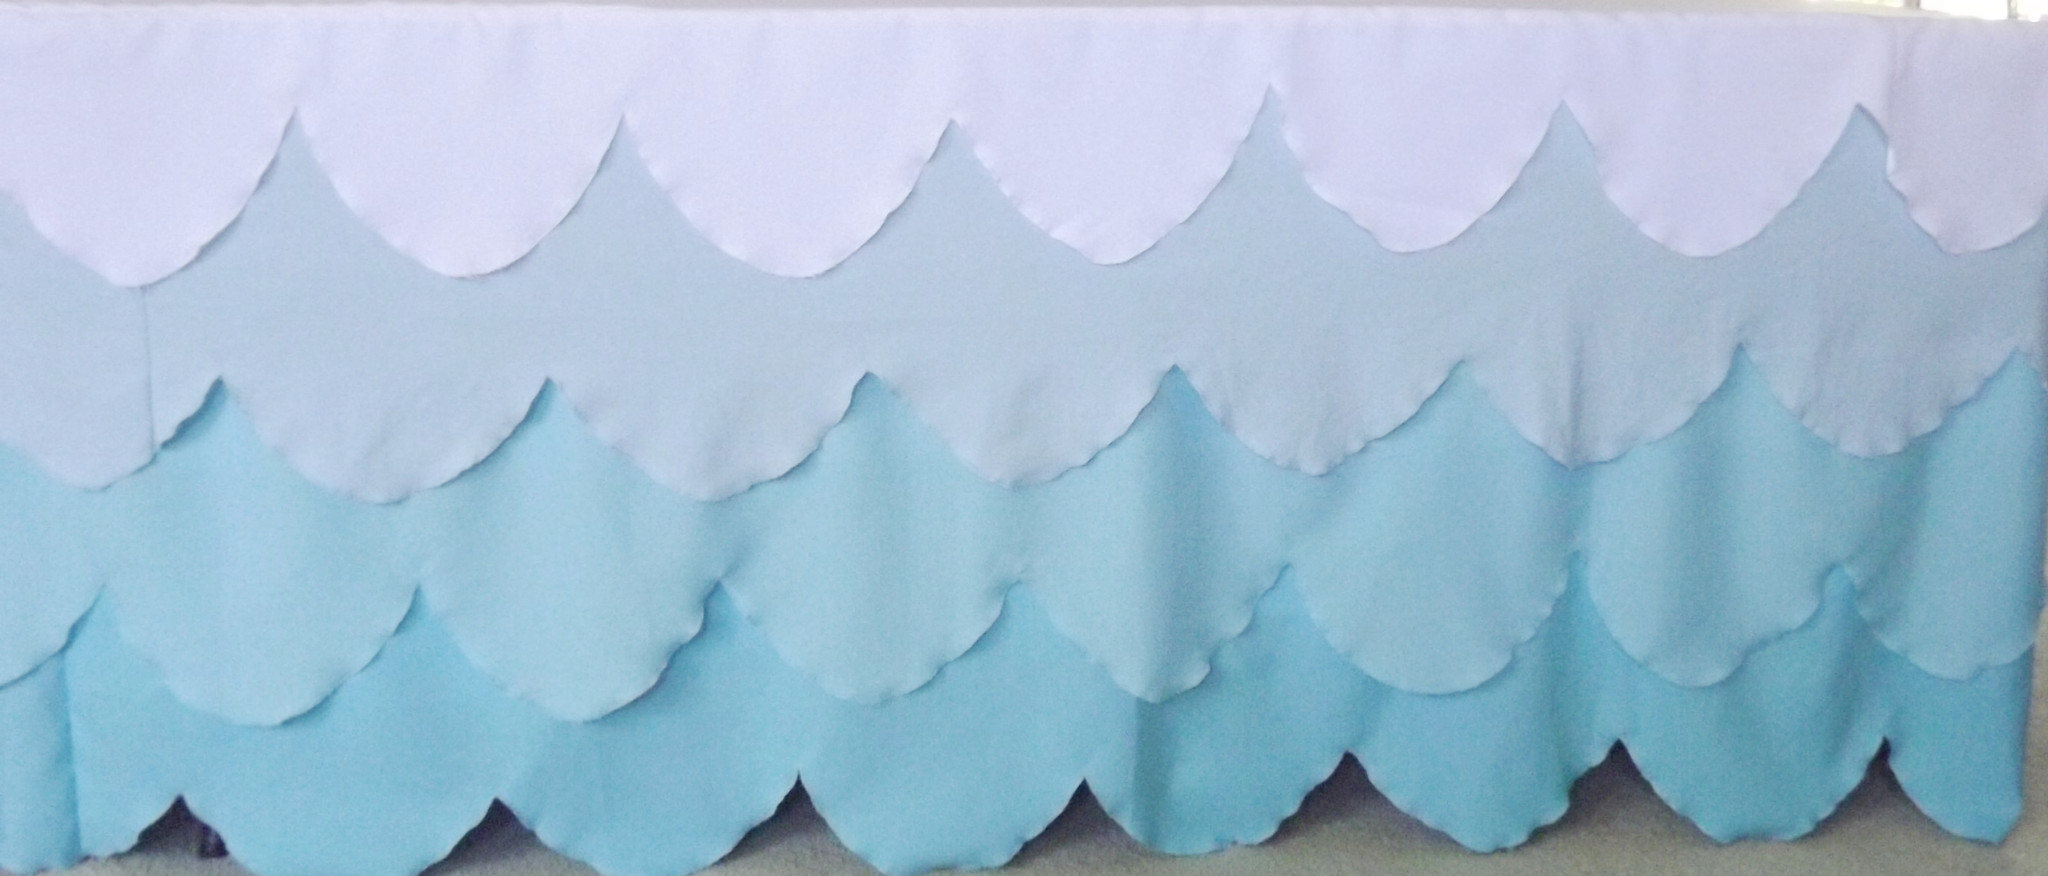 Aqua ombre tablecloth for hire or purchase - Saffy and May (Qld)